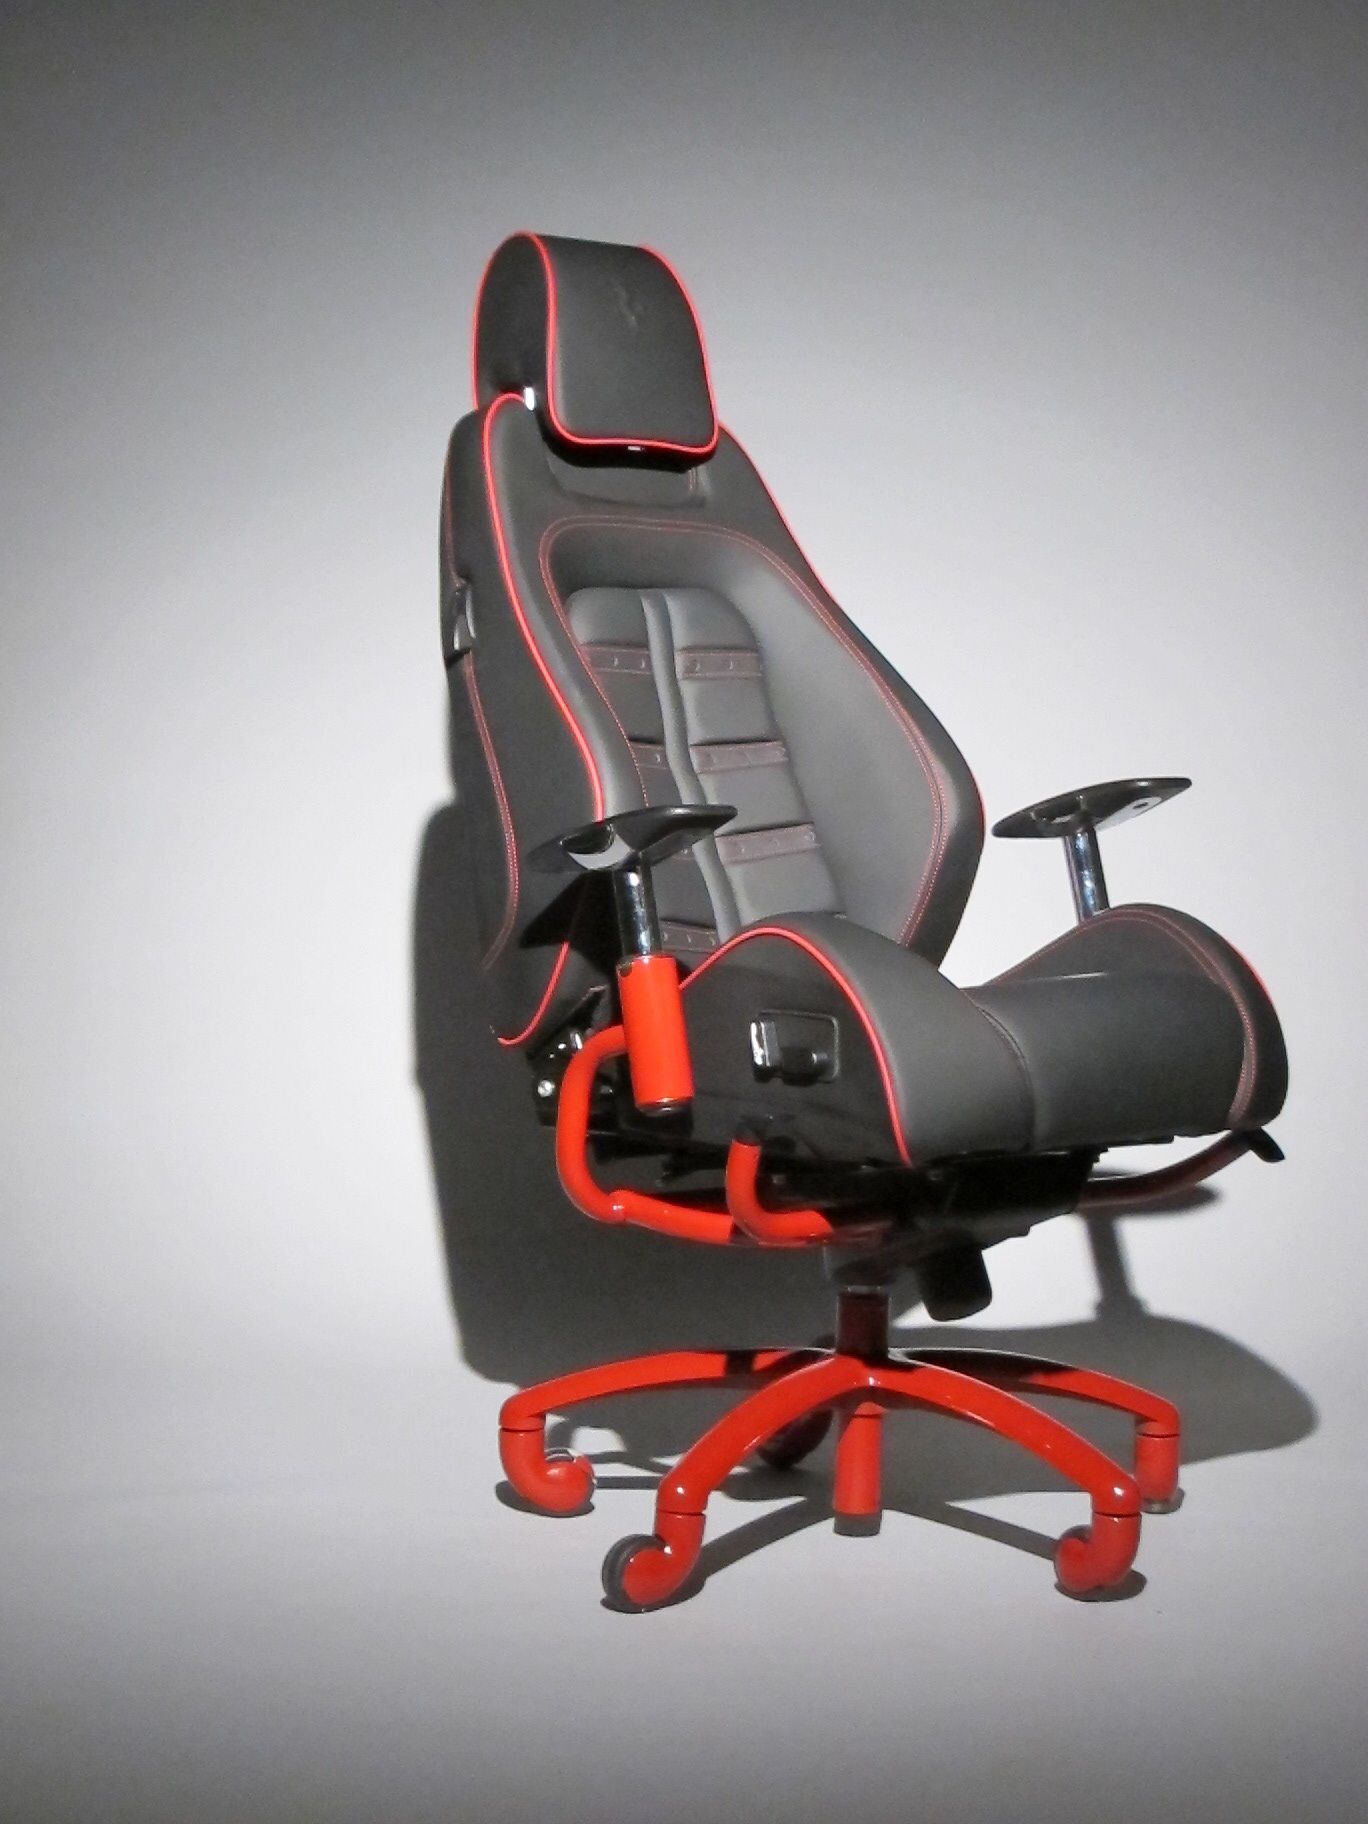 race chairs ferrari 360 daytona. Authentic Ferrari Office Chair From Racechairs.com, Made Using The Actual Seat A Real F430 Race Chairs 360 Daytona